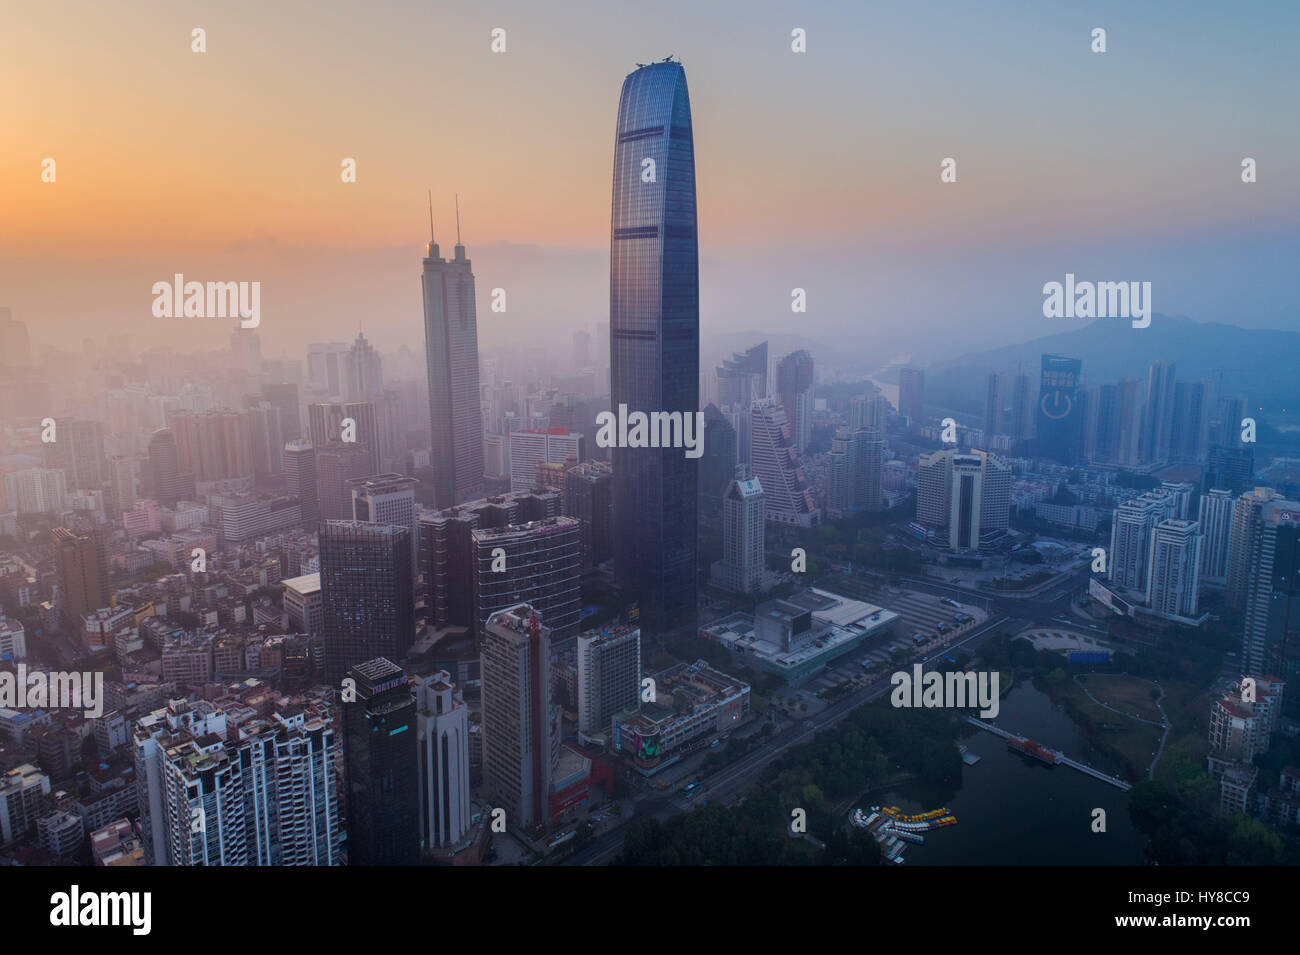 Kingkey 100, a 100 story skyscraper, against a sunrise in Shenzhen, Guangdong, China. It is currently the 14th tallest - Stock Image